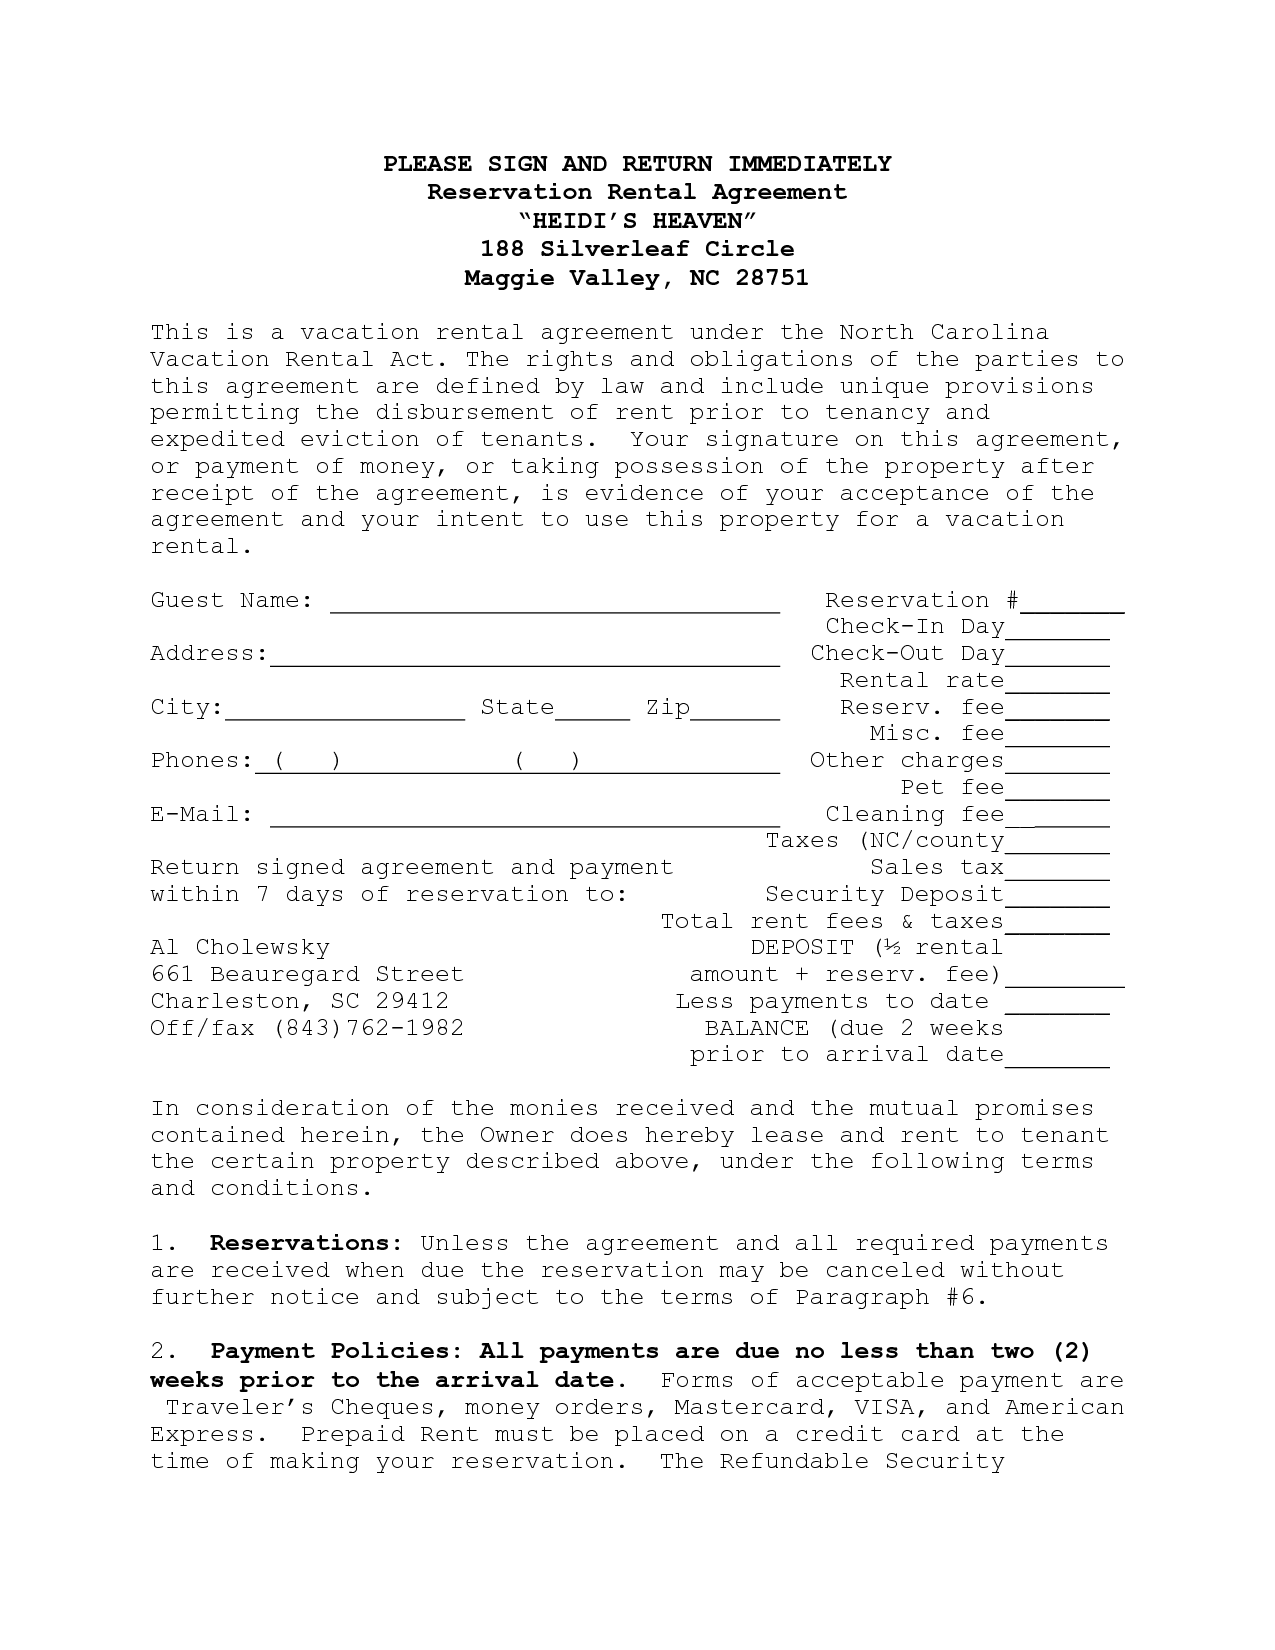 House lease agreement template house rental agreement for Land rental contract template